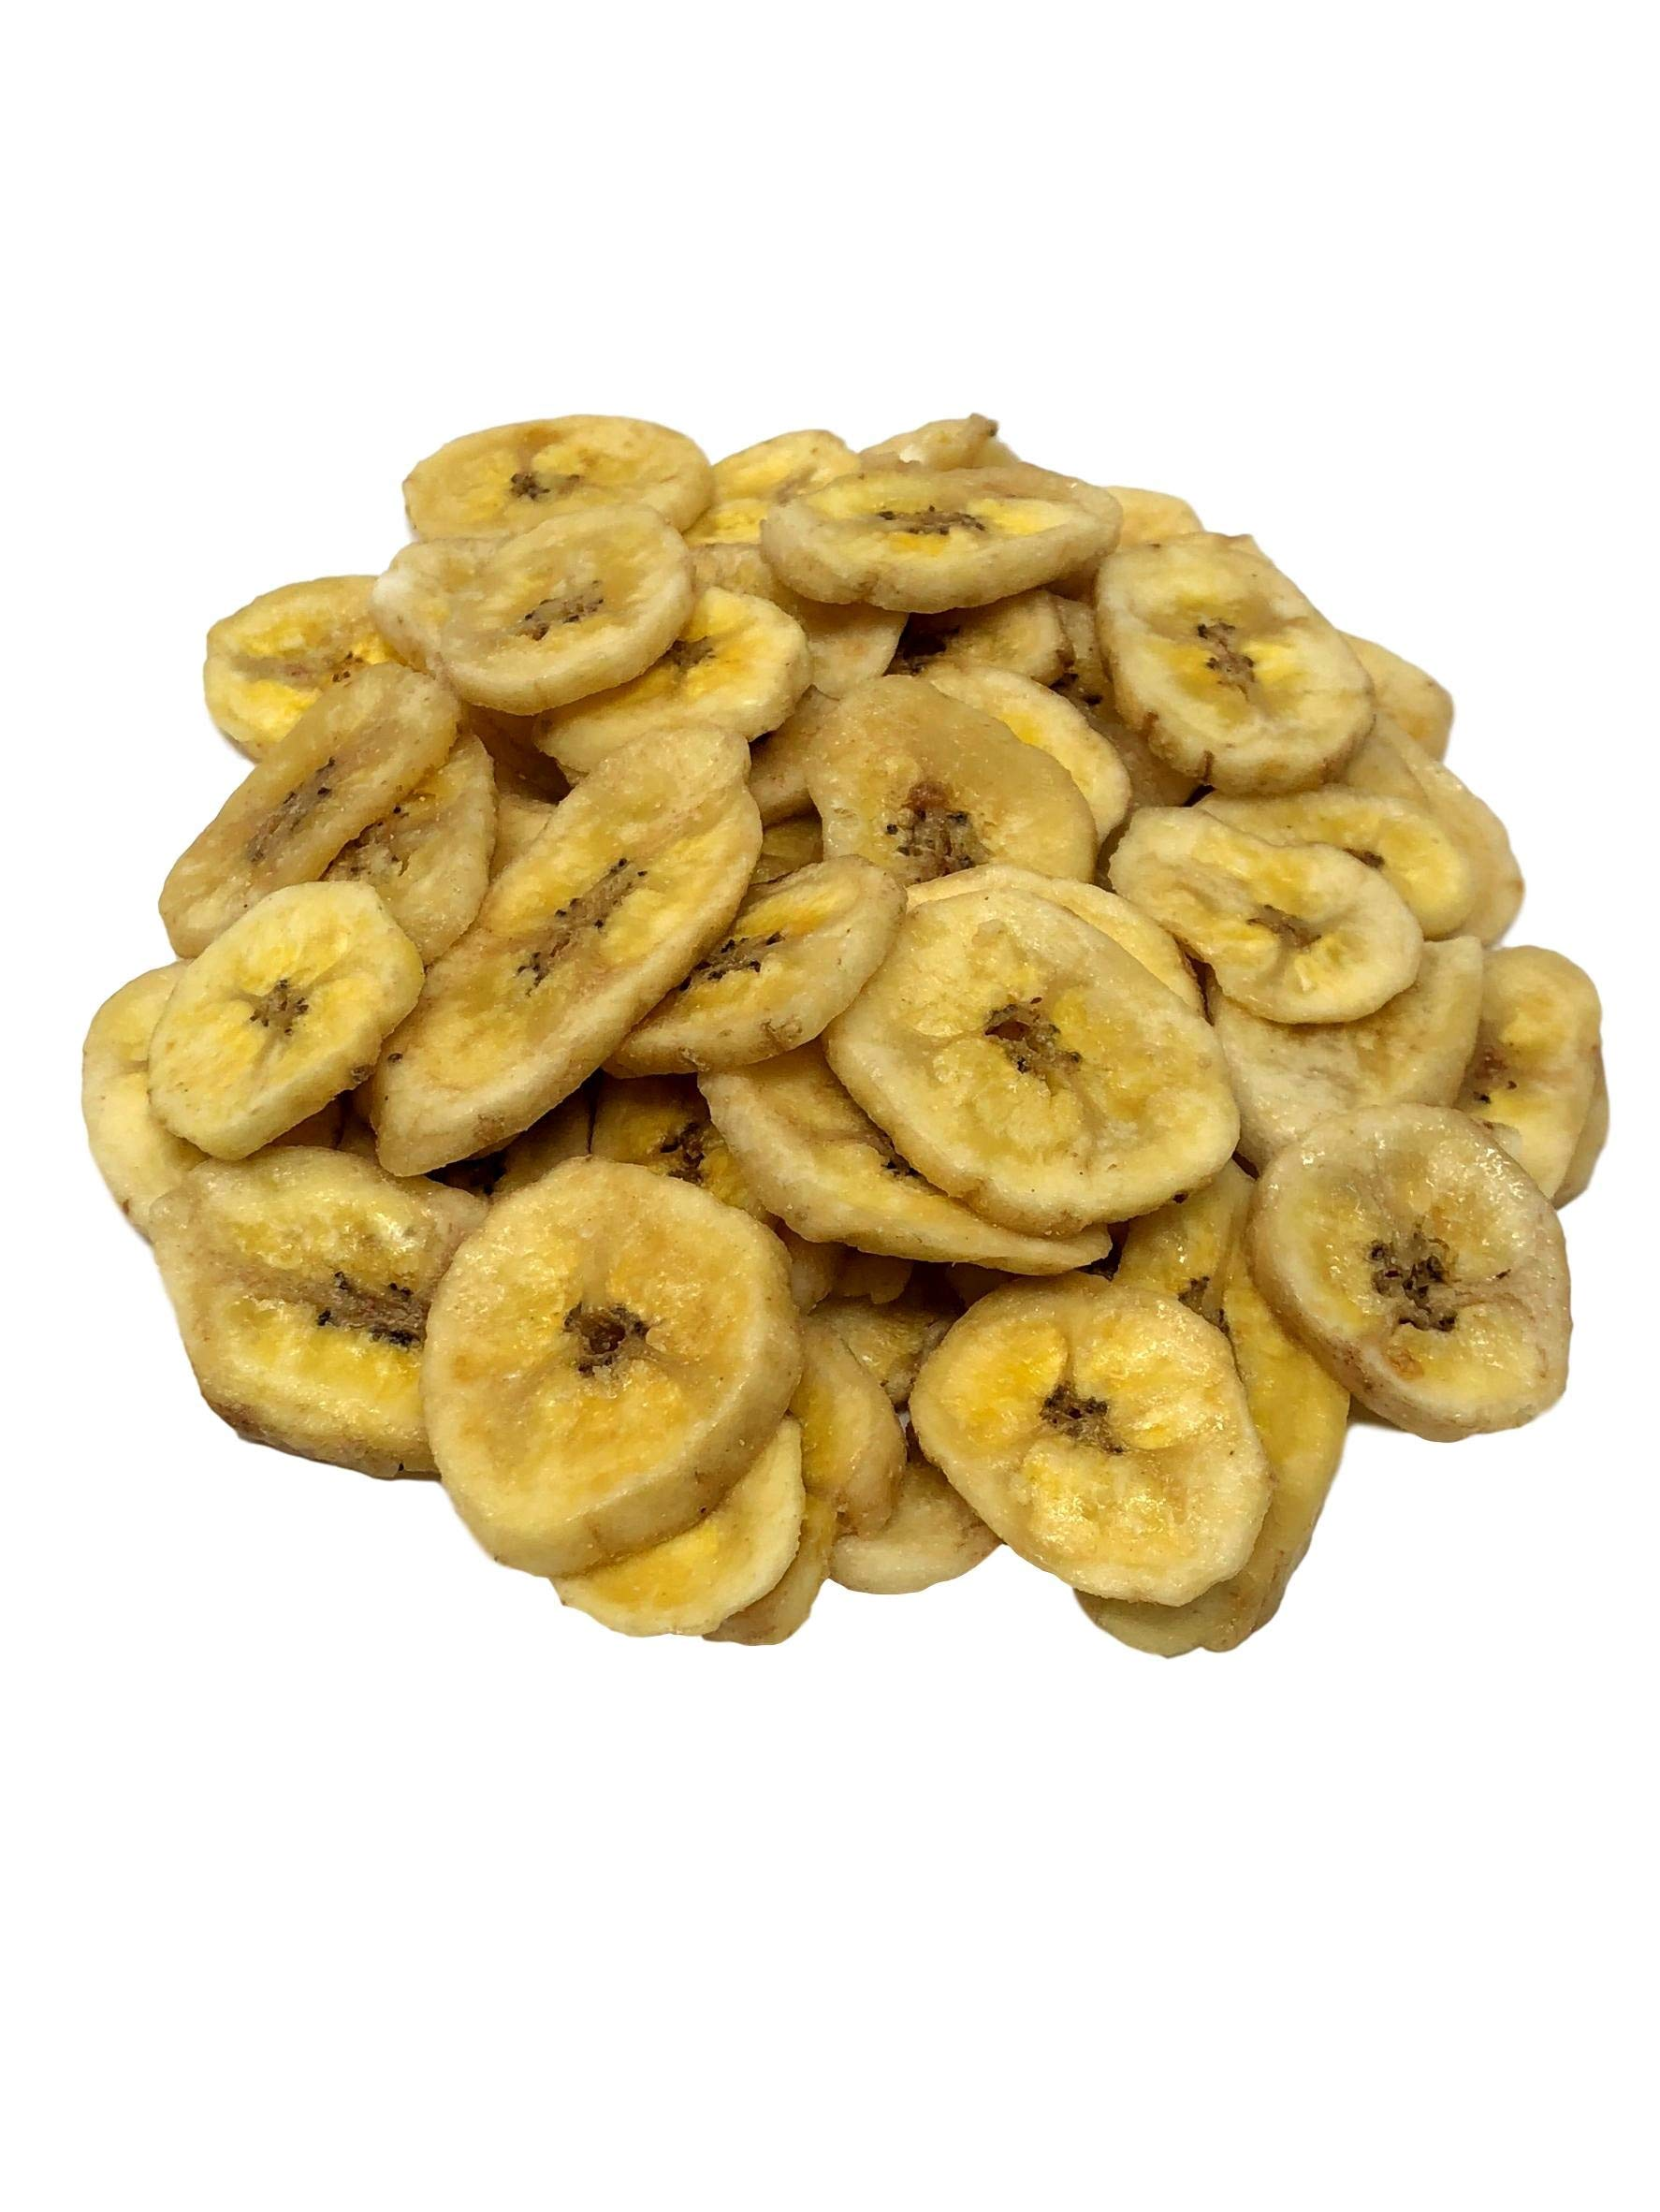 Delice - Organic Sweetened Banana Chips | All Organic Ingredients and Non-GMO | No Artificial Flavors and No Sulphure|Whole Organic Banana Chips In Resealable Bags!!! (2 LBS) by Delice